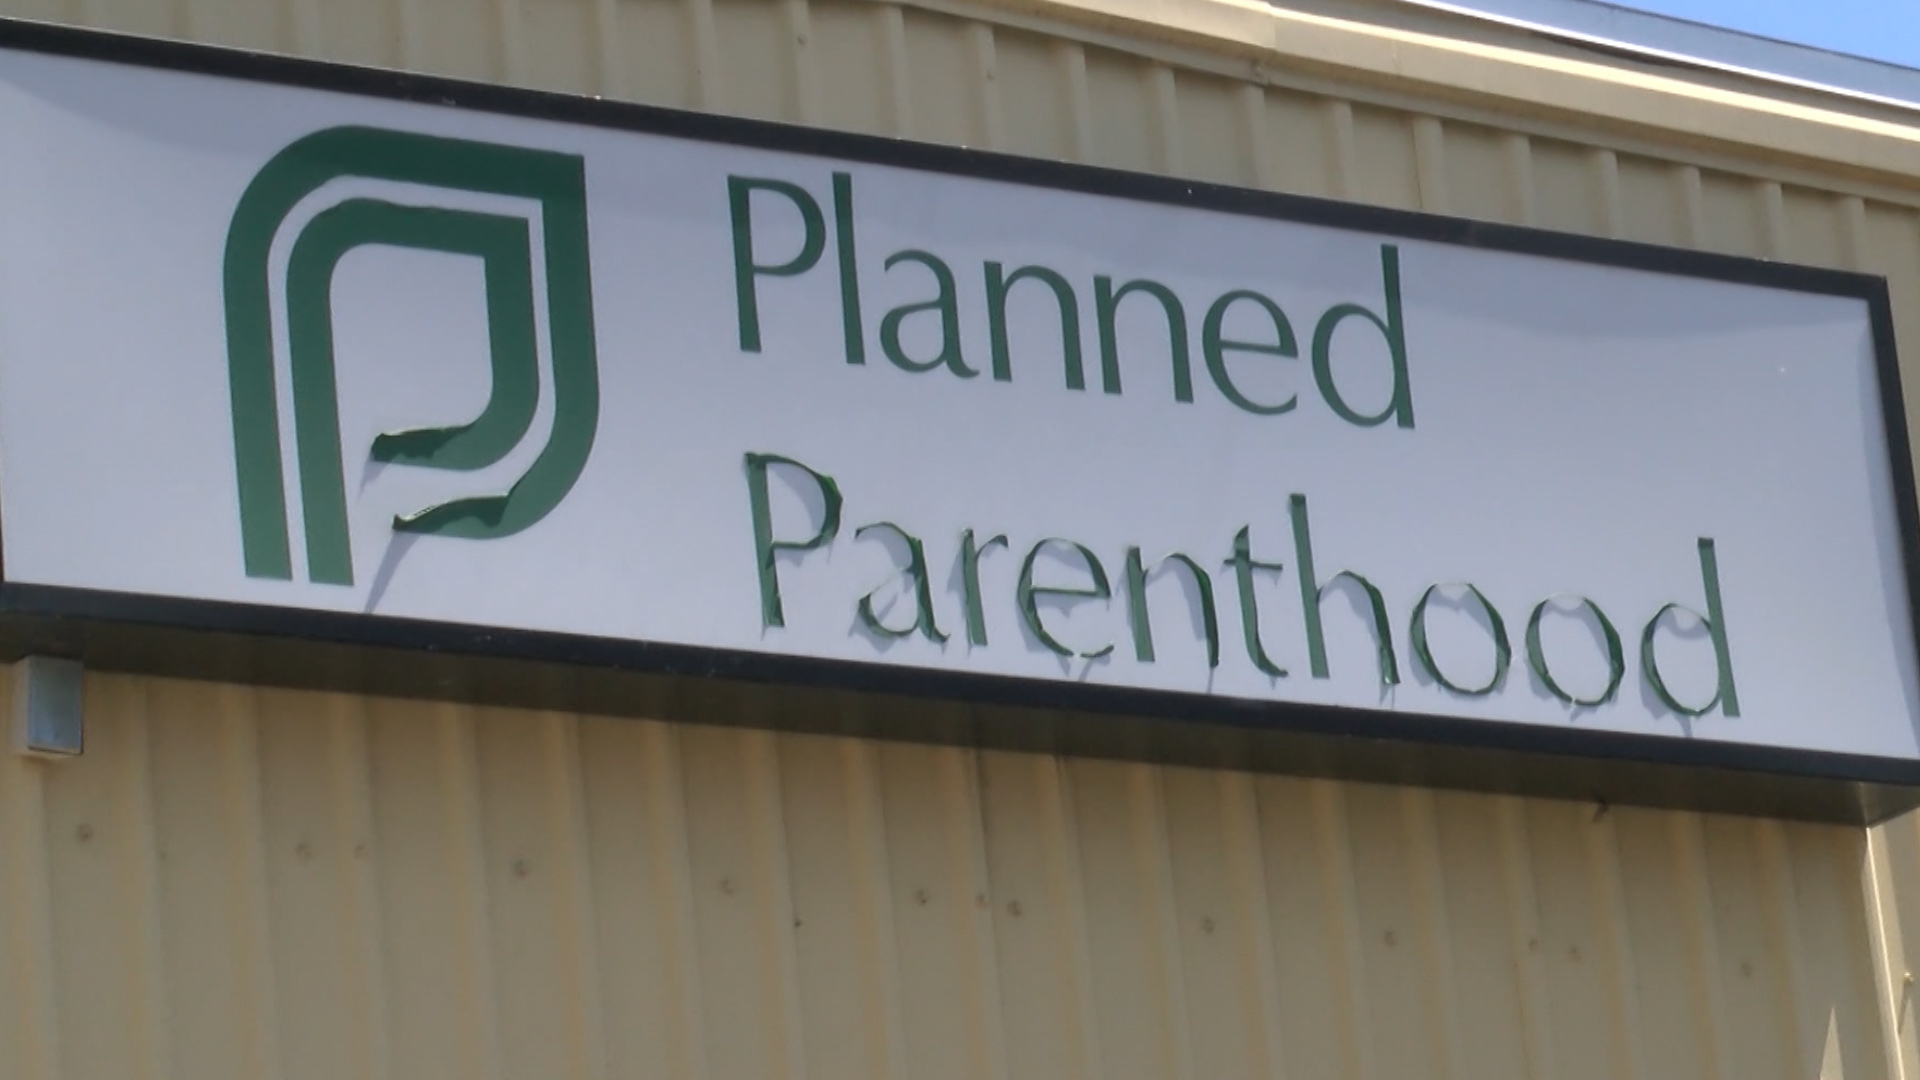 Planned Parenthood_189417